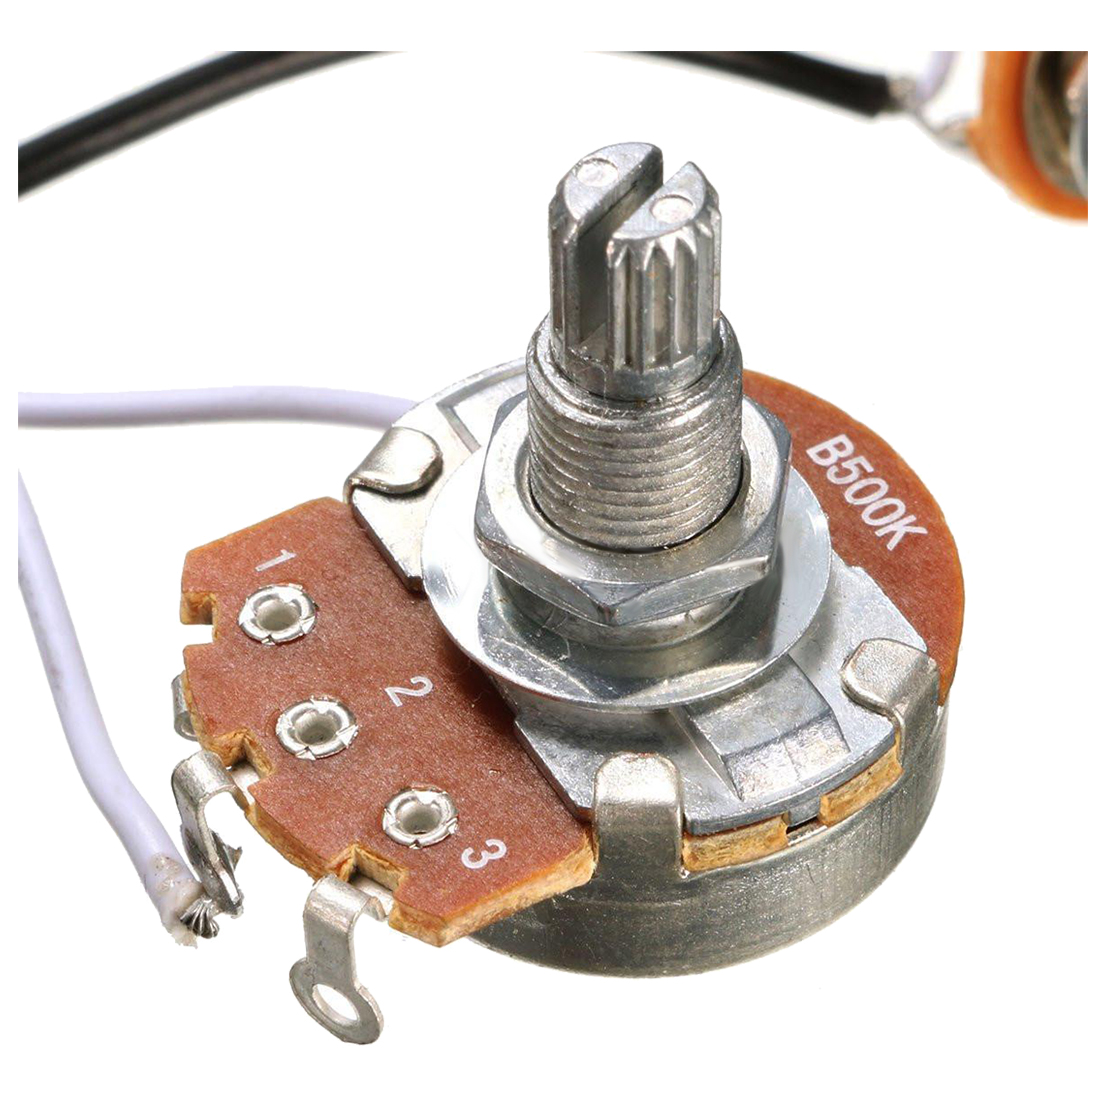 Electric Guitar Parts Wiring Harness 2v1t 500k Pots Tone 3 Way Pickup 1v2t 5 Switch For Fender Toggle O3d5